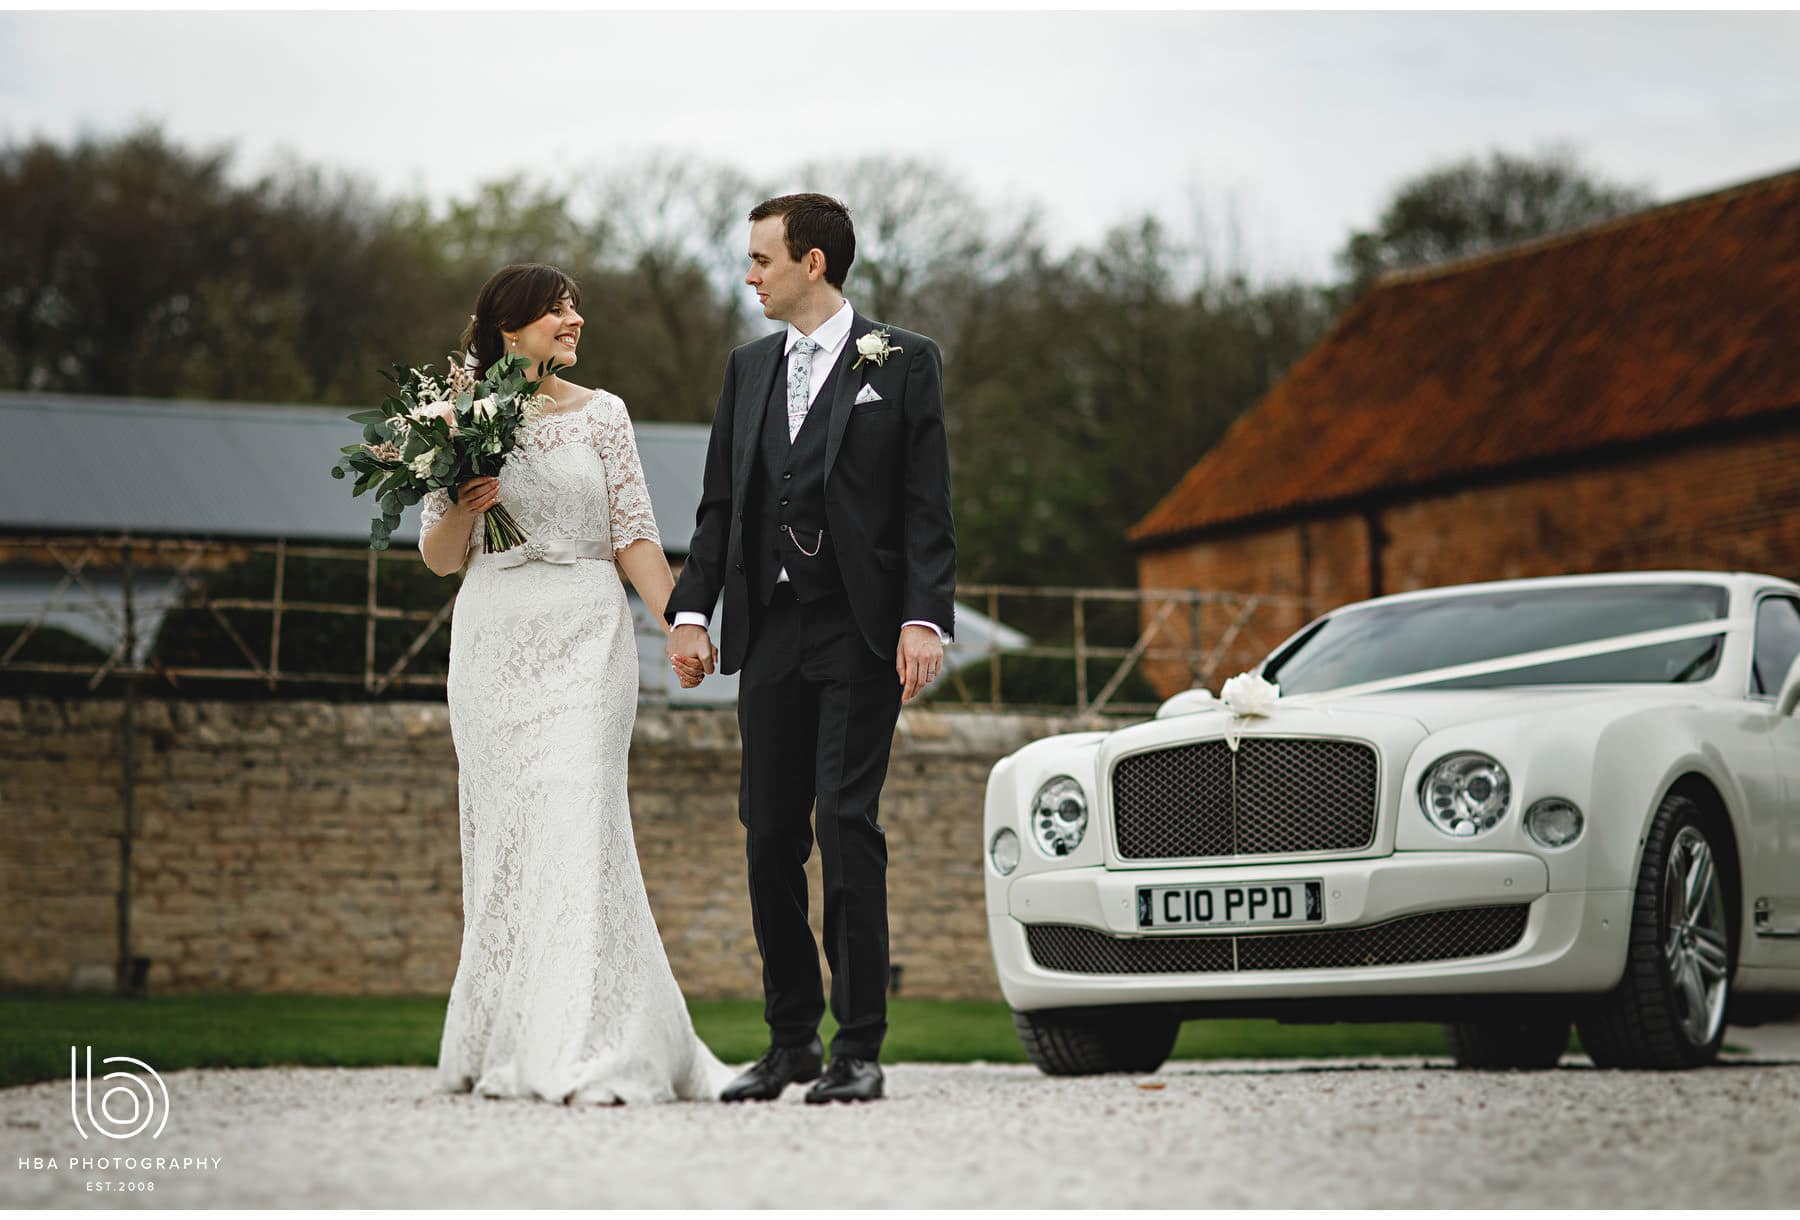 the bride & groom with the car